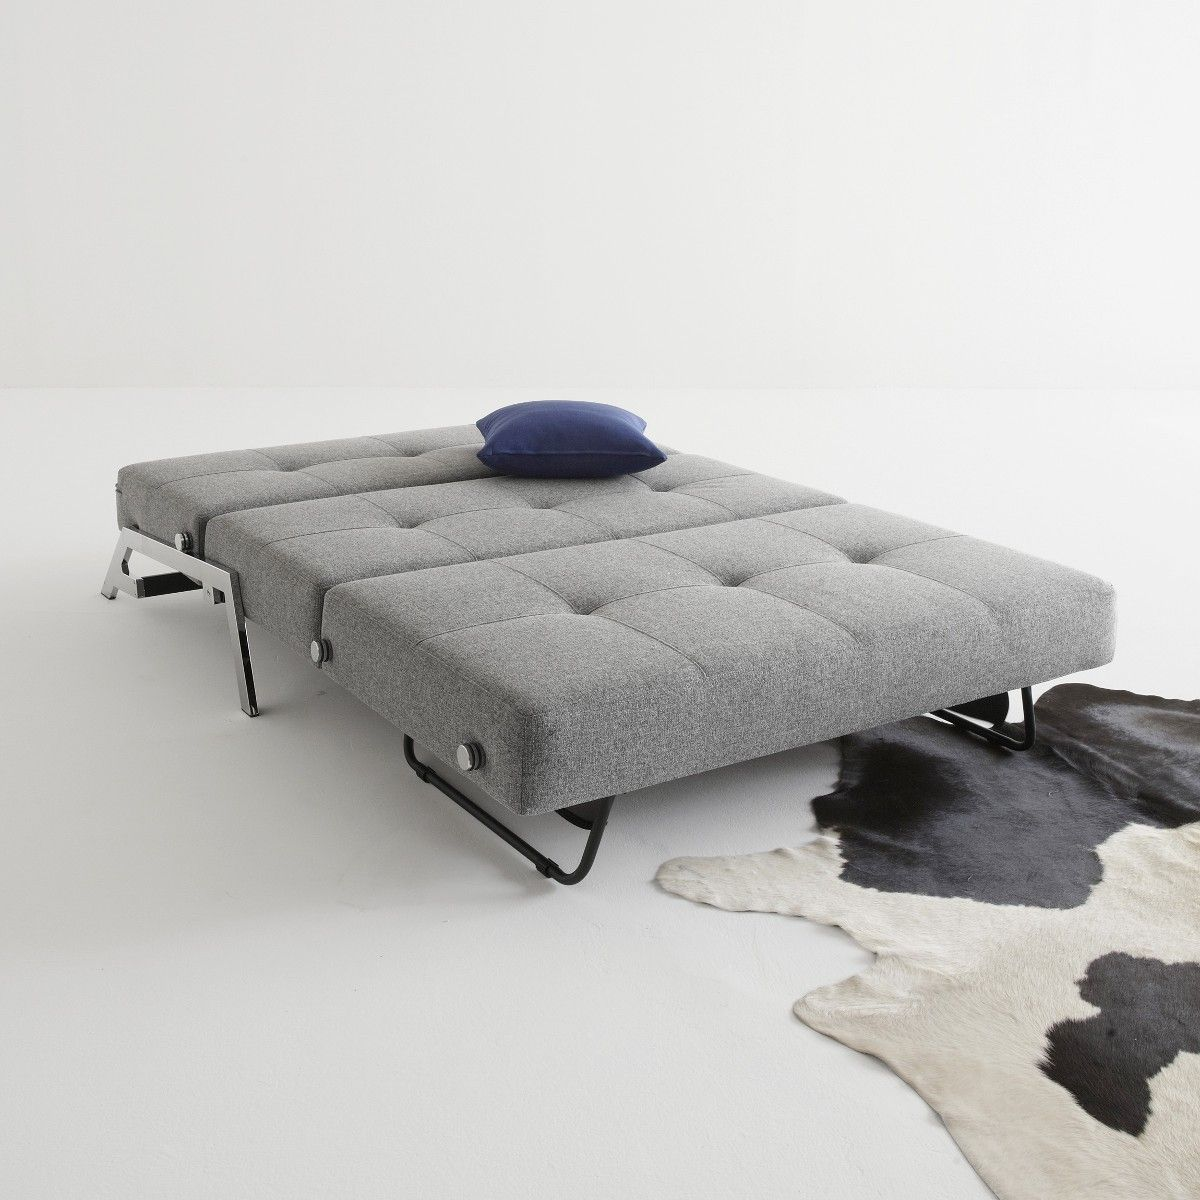 https://www.smartarredodesign.com/27138-thickbox_default/divano-letto-cubed.jpg